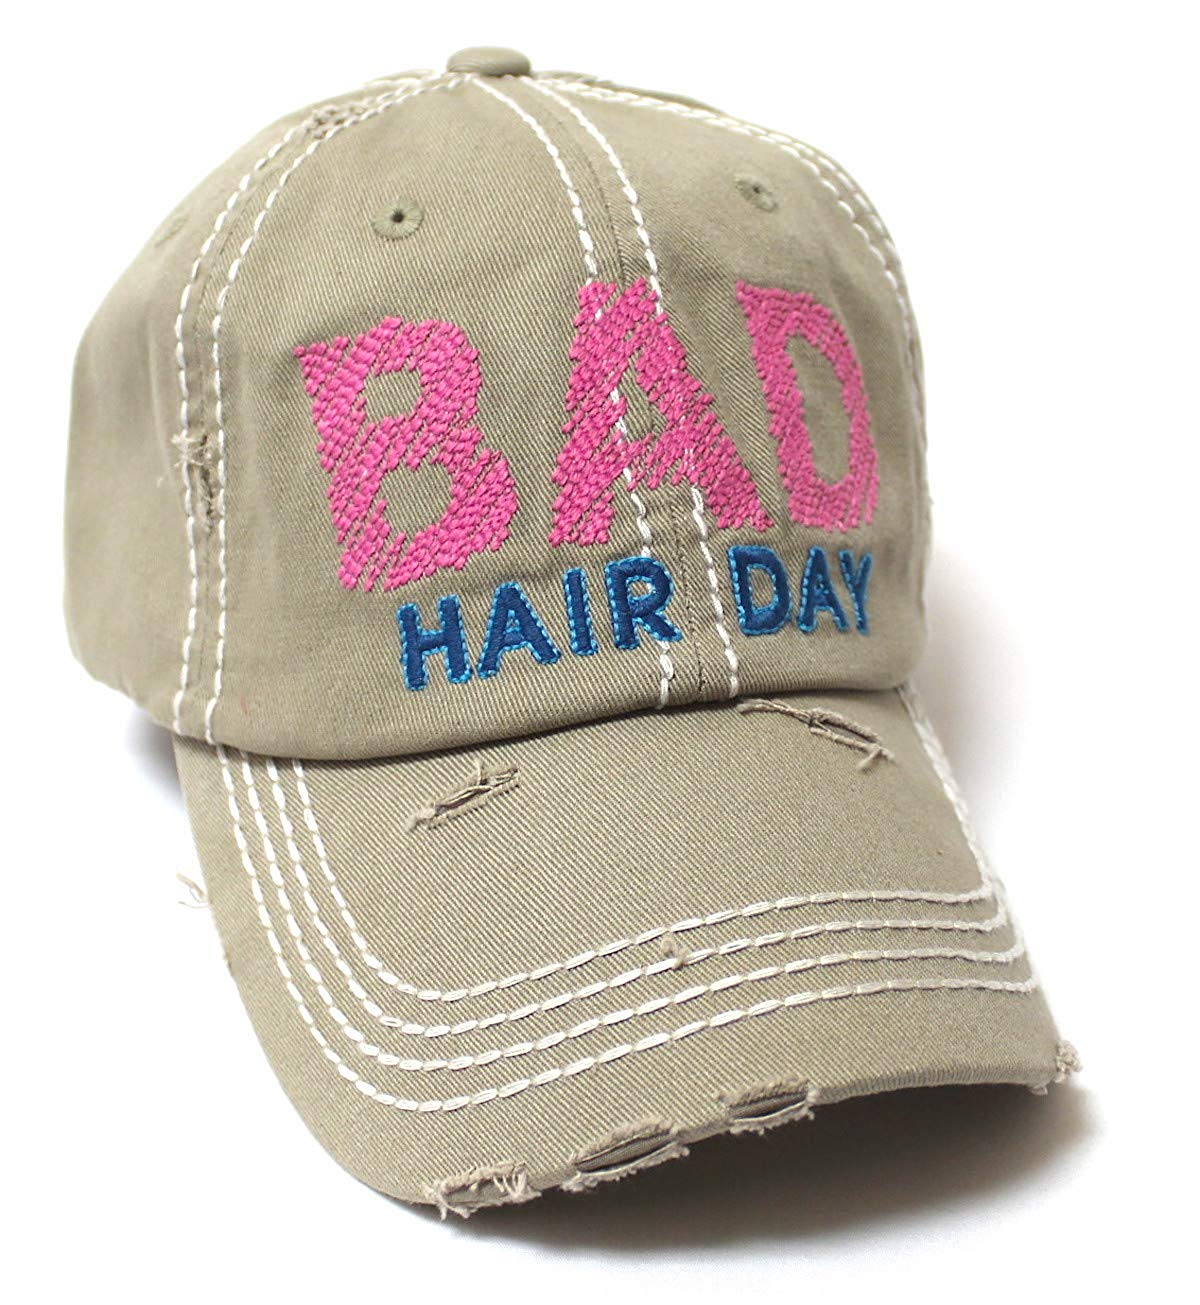 Bad Hair Day Stitch Embroidery Distressed Baseball Hat, Khaki - Caps 'N Vintage